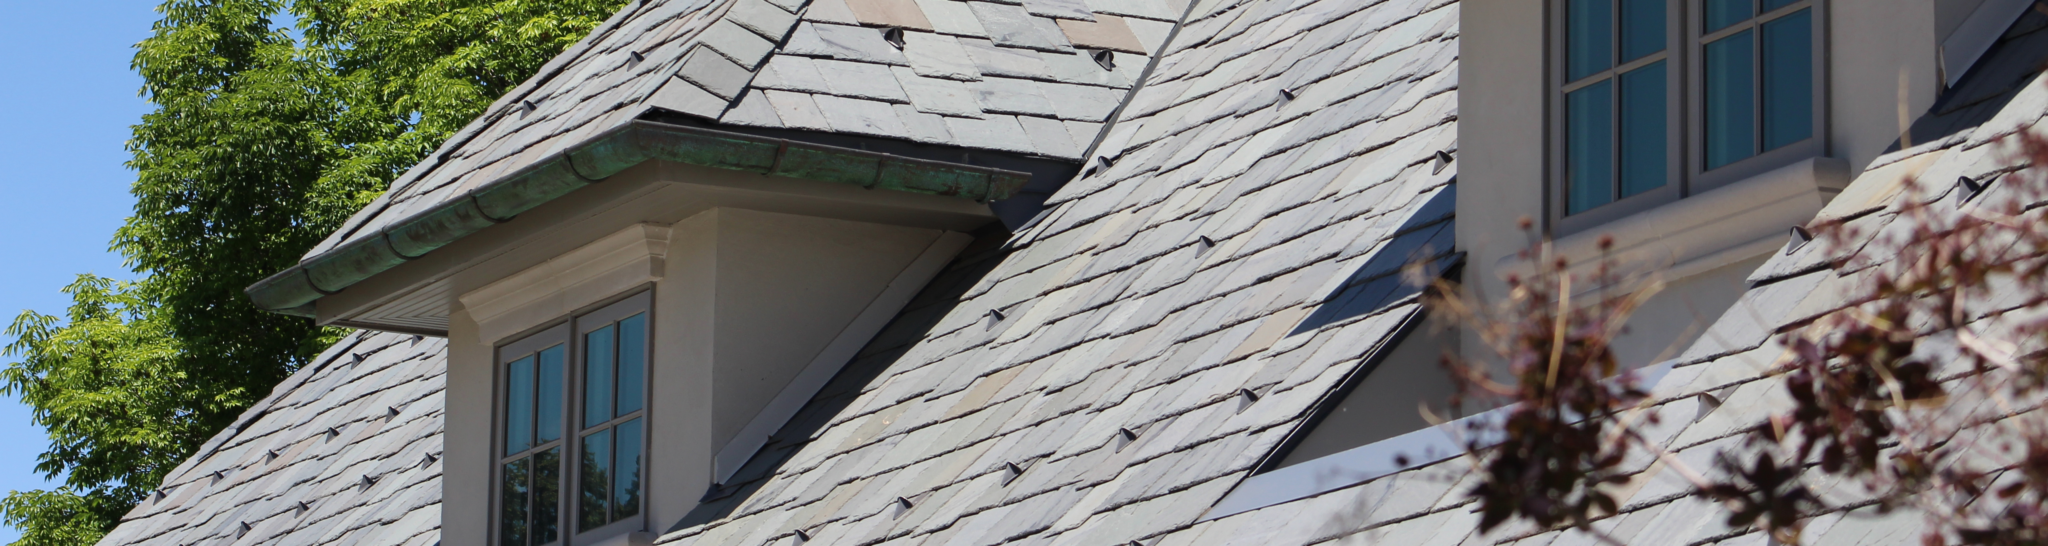 "3/8"" to 1/2"" slate roof. Vermont Gray Black"